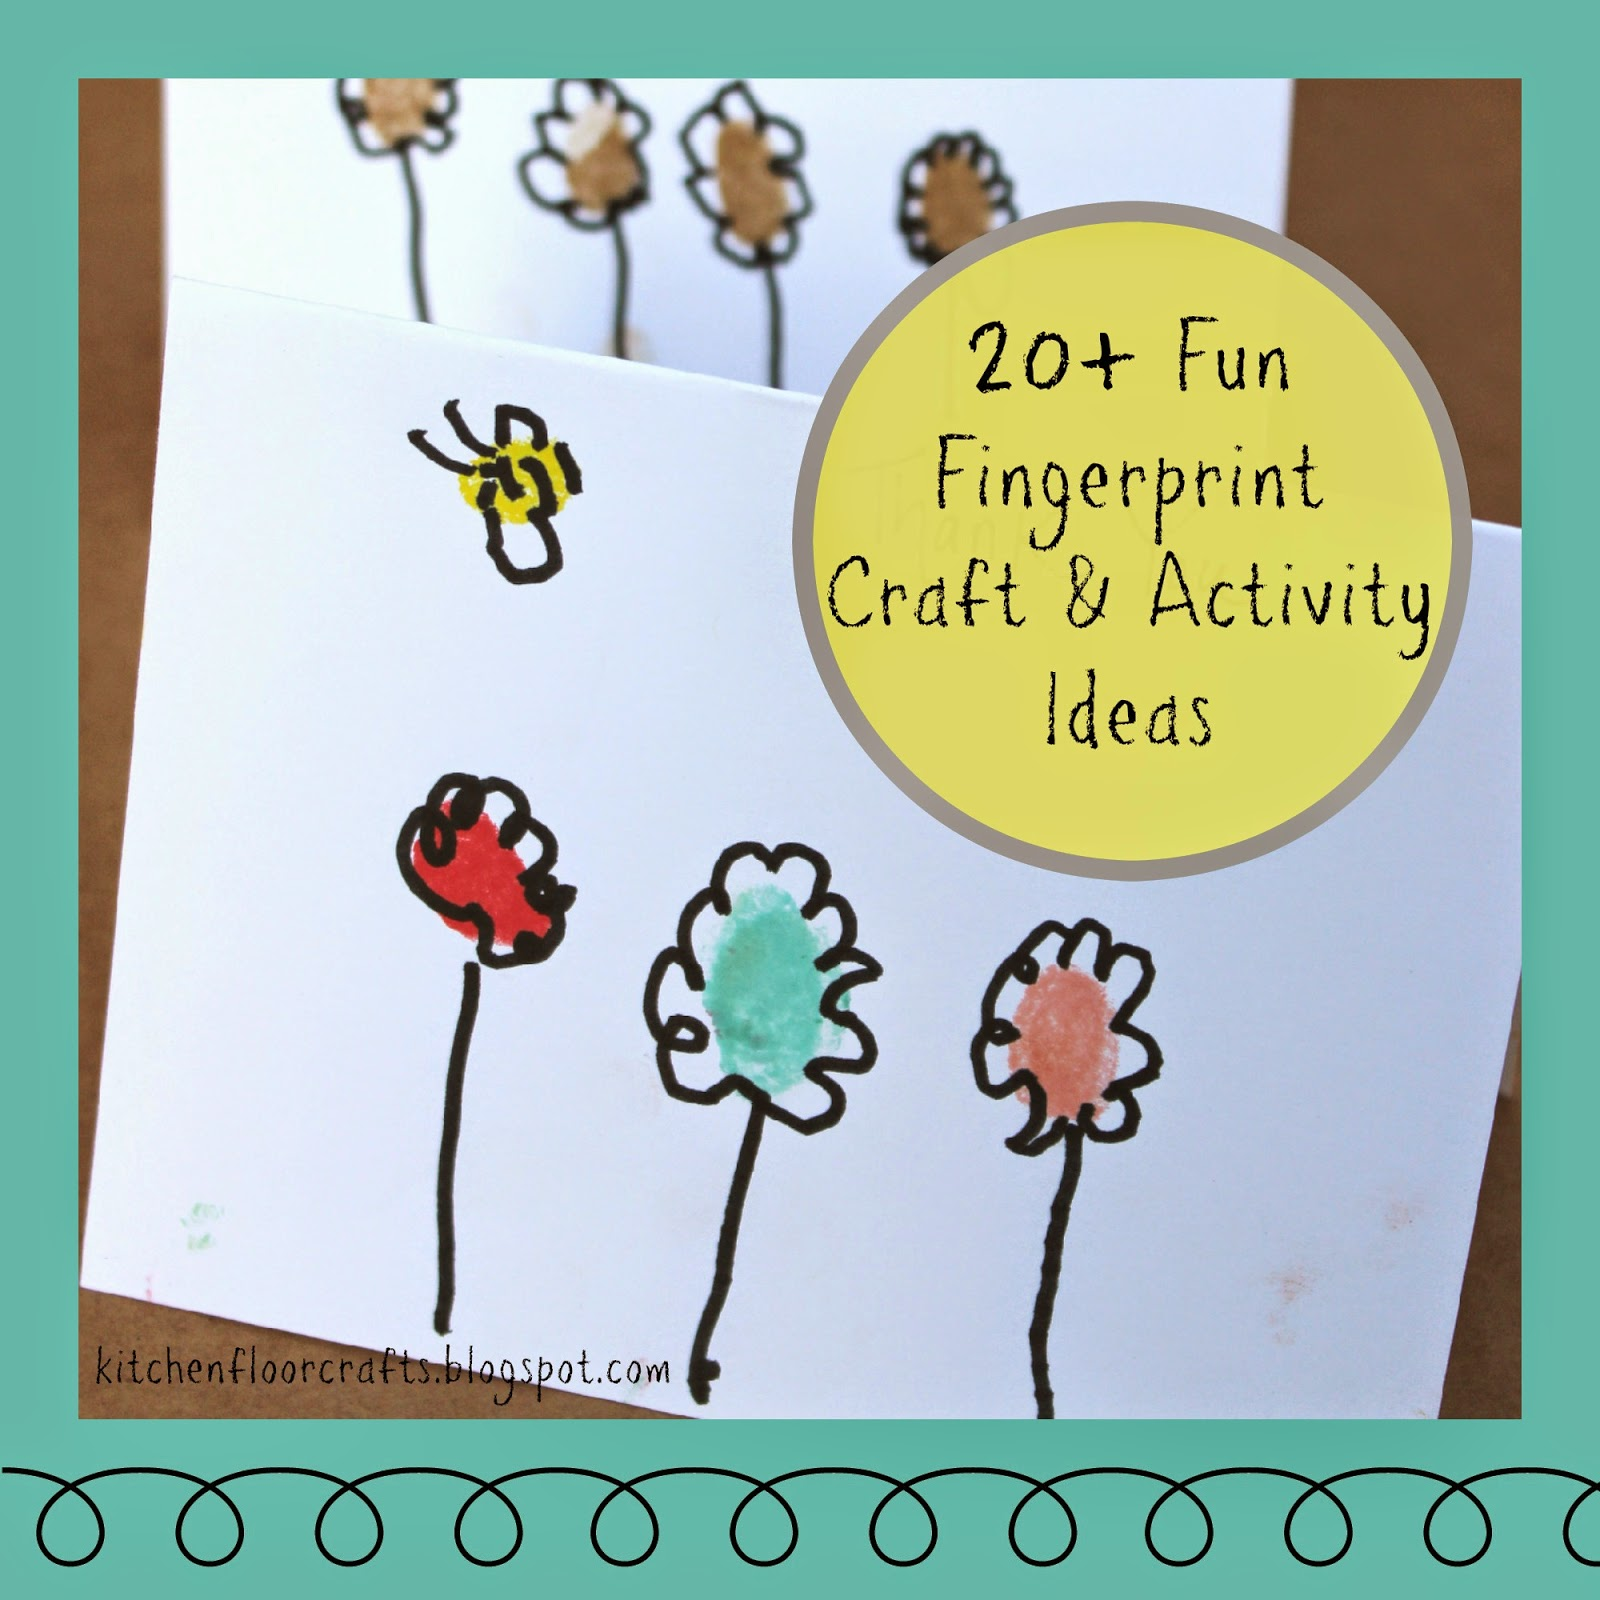 Kitchen Floor Crafts: 20+ Fun Fingerprint Craft & Activity Ideas